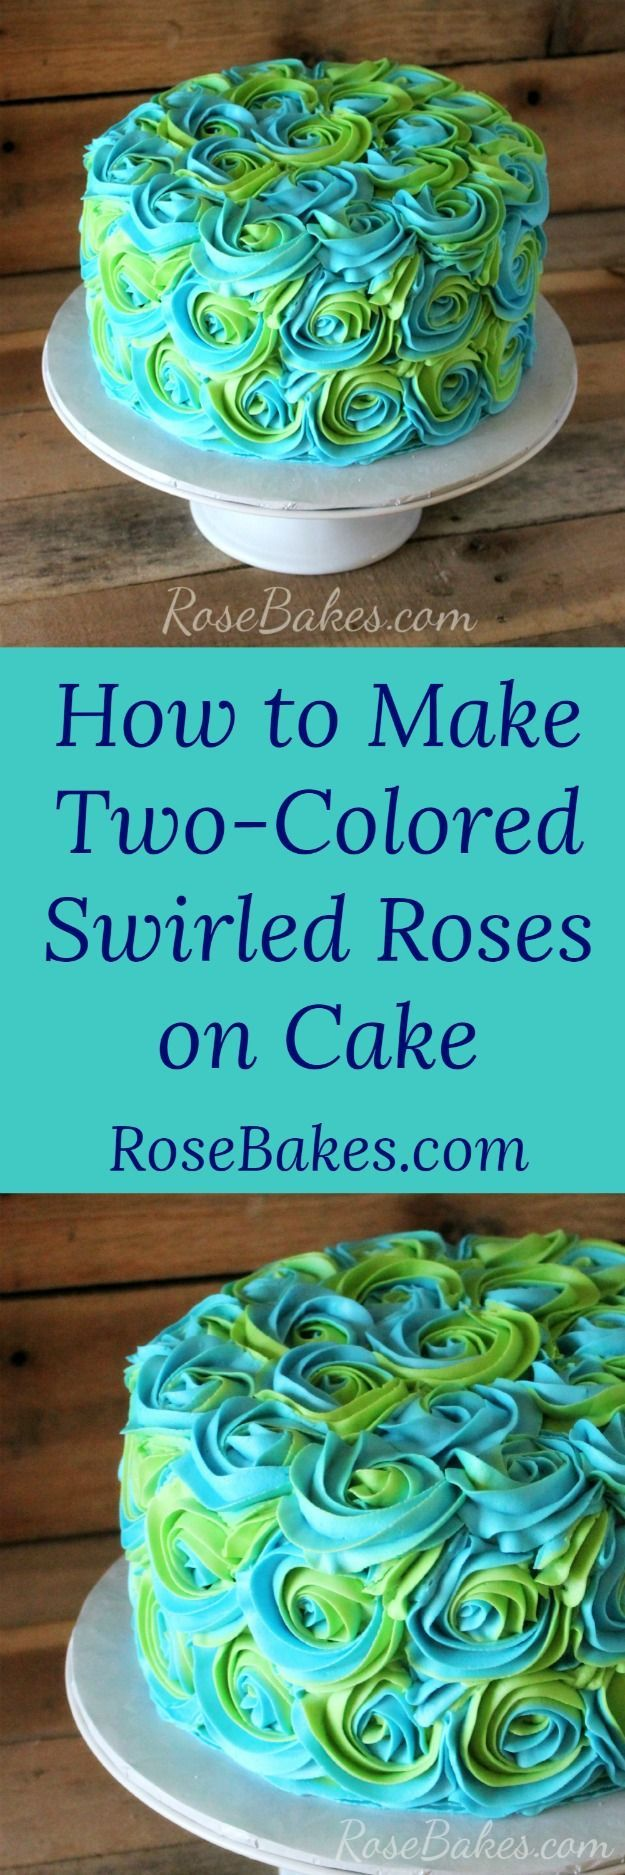 How to Make Two-Colored Swirled Roses on Cake | RoseBakes.com